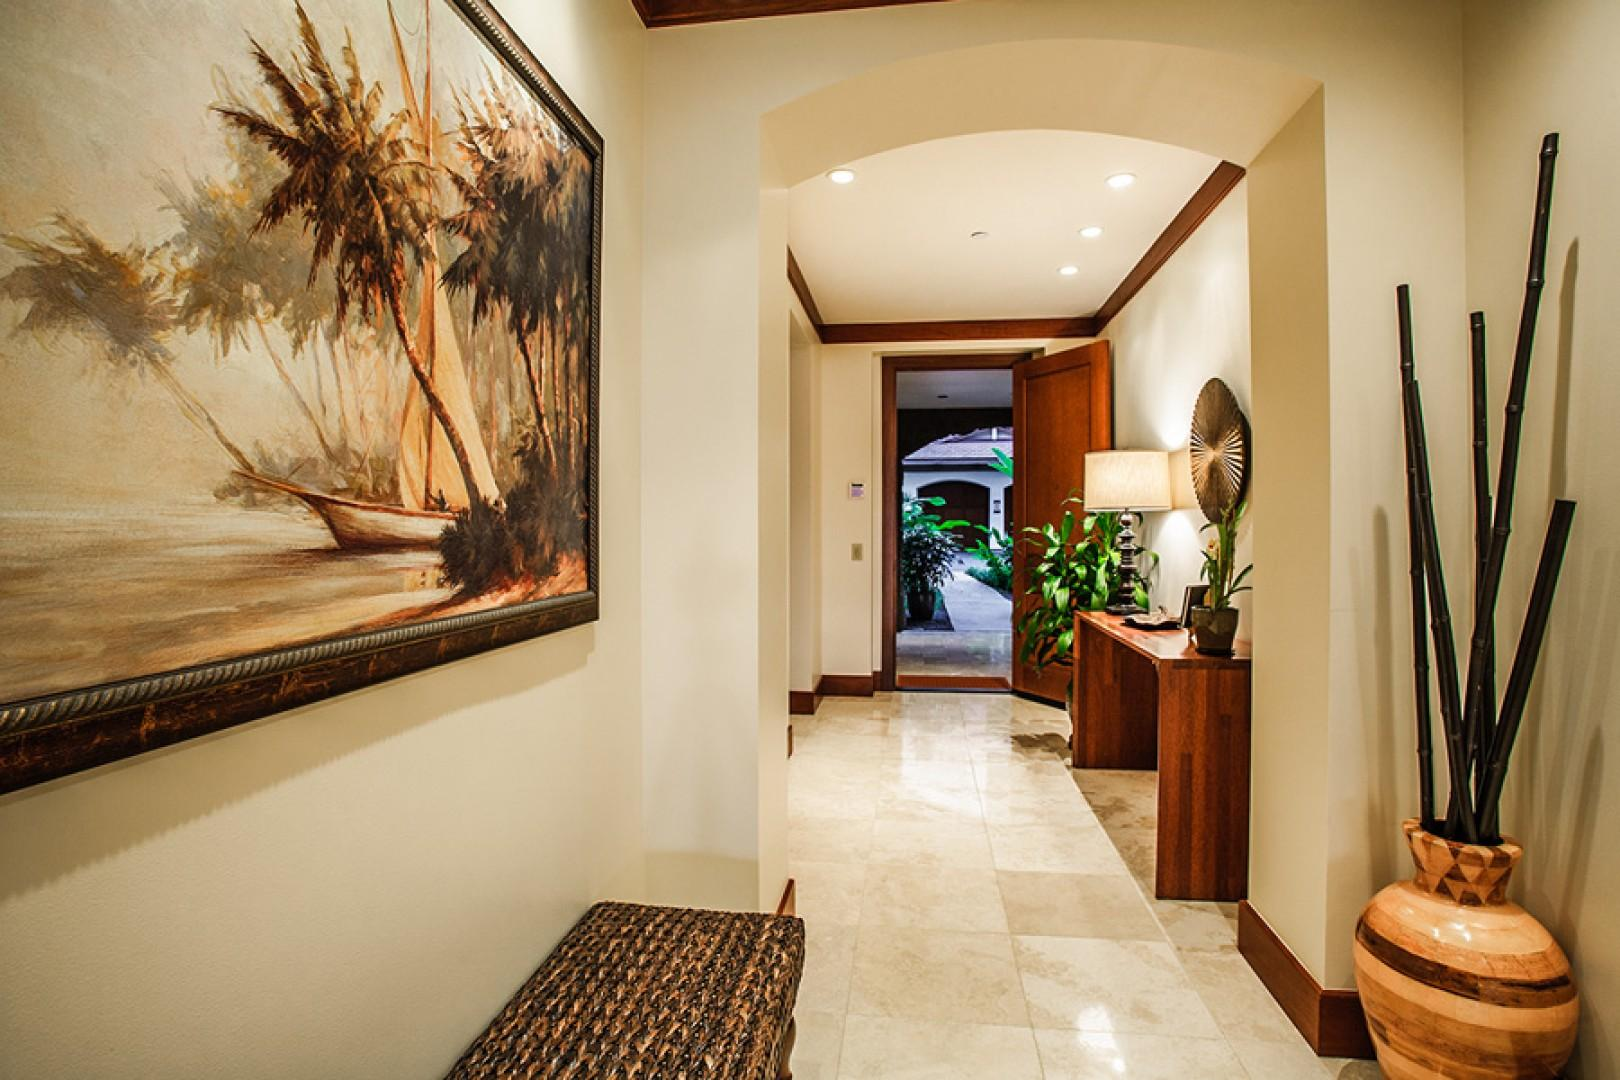 Stylish wall art throughout, including several original oil paintings from local Maui artists.